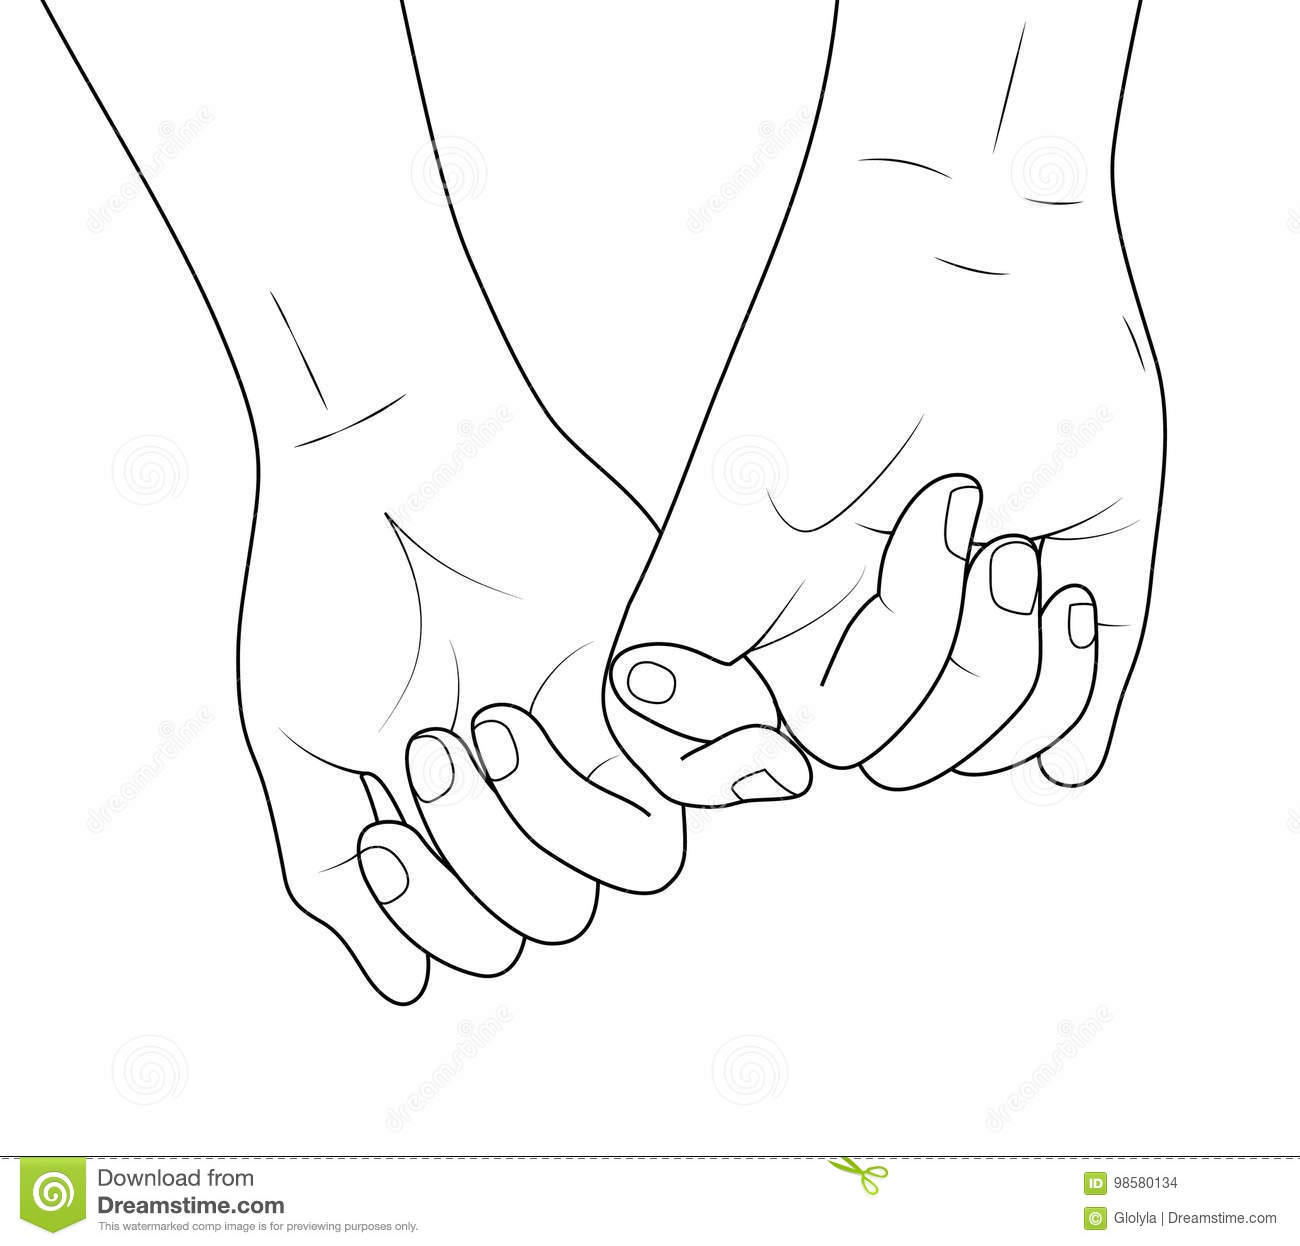 Holding Hands Outline Stock Vector Illustration Of